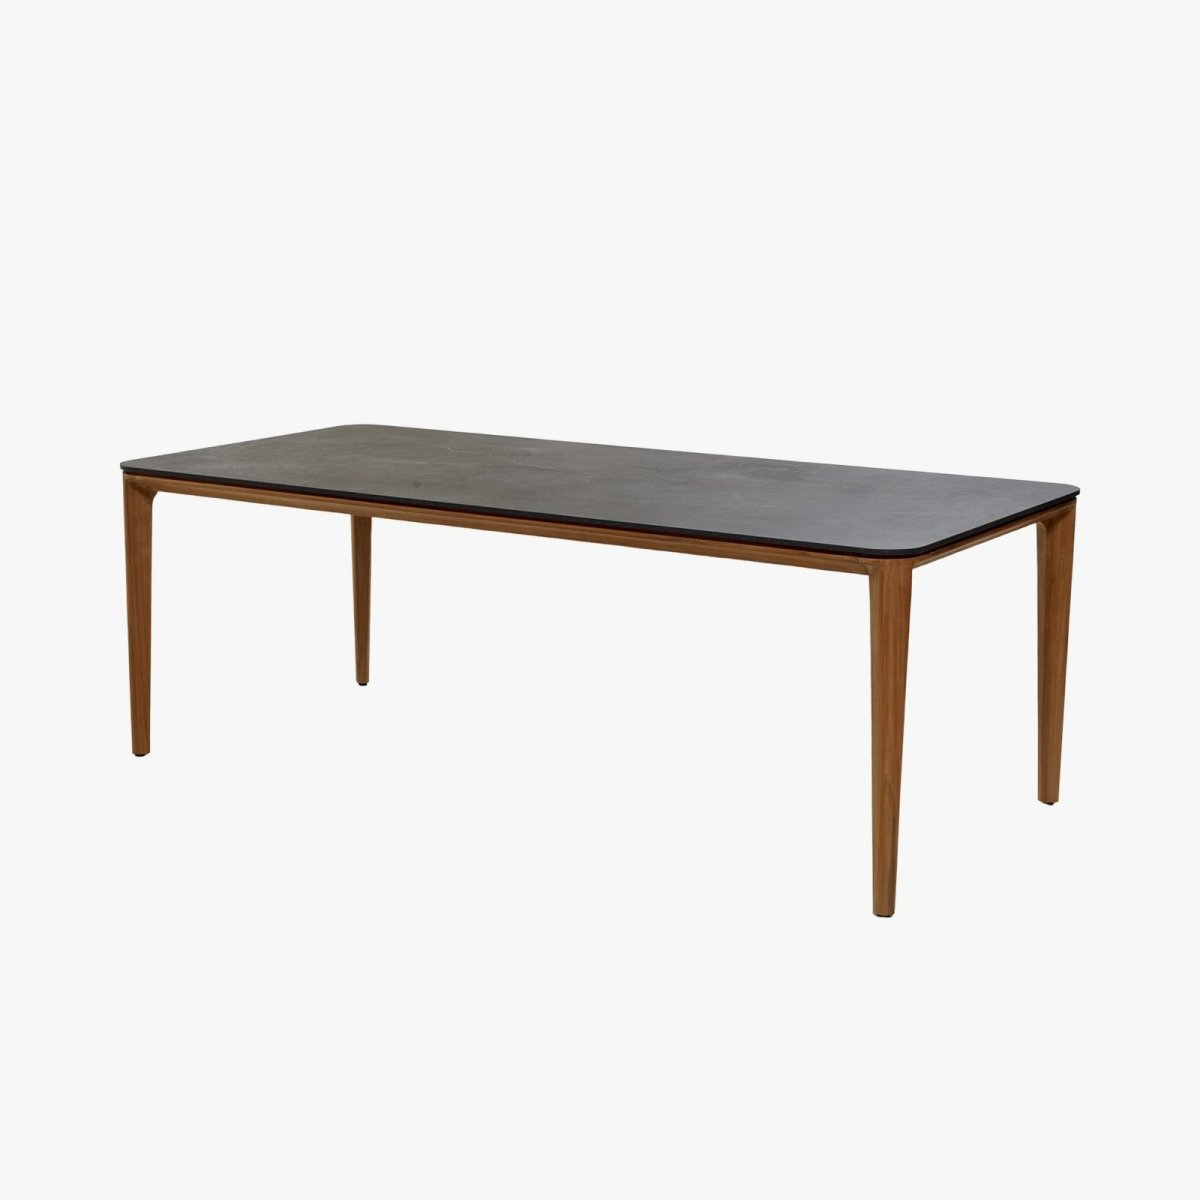 Aspect Dining Table Base, 210 x 100 cm.